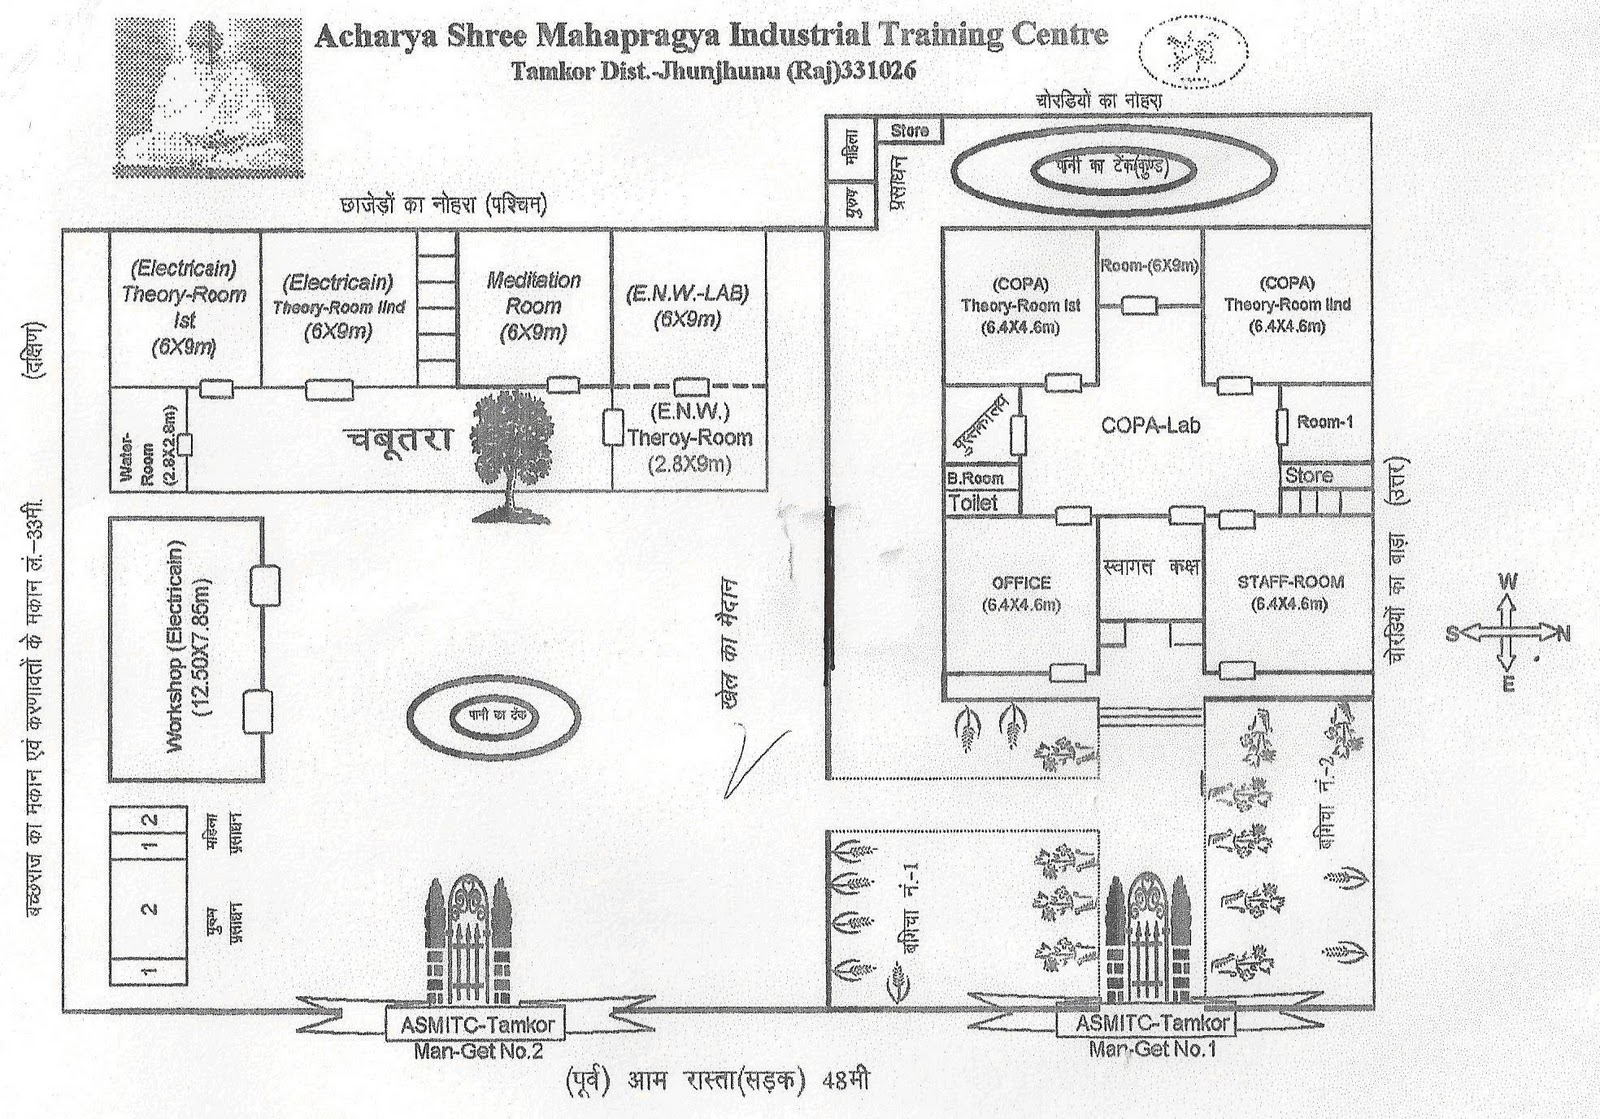 Acharya Shri Mahapragya Industrial Training Centre June